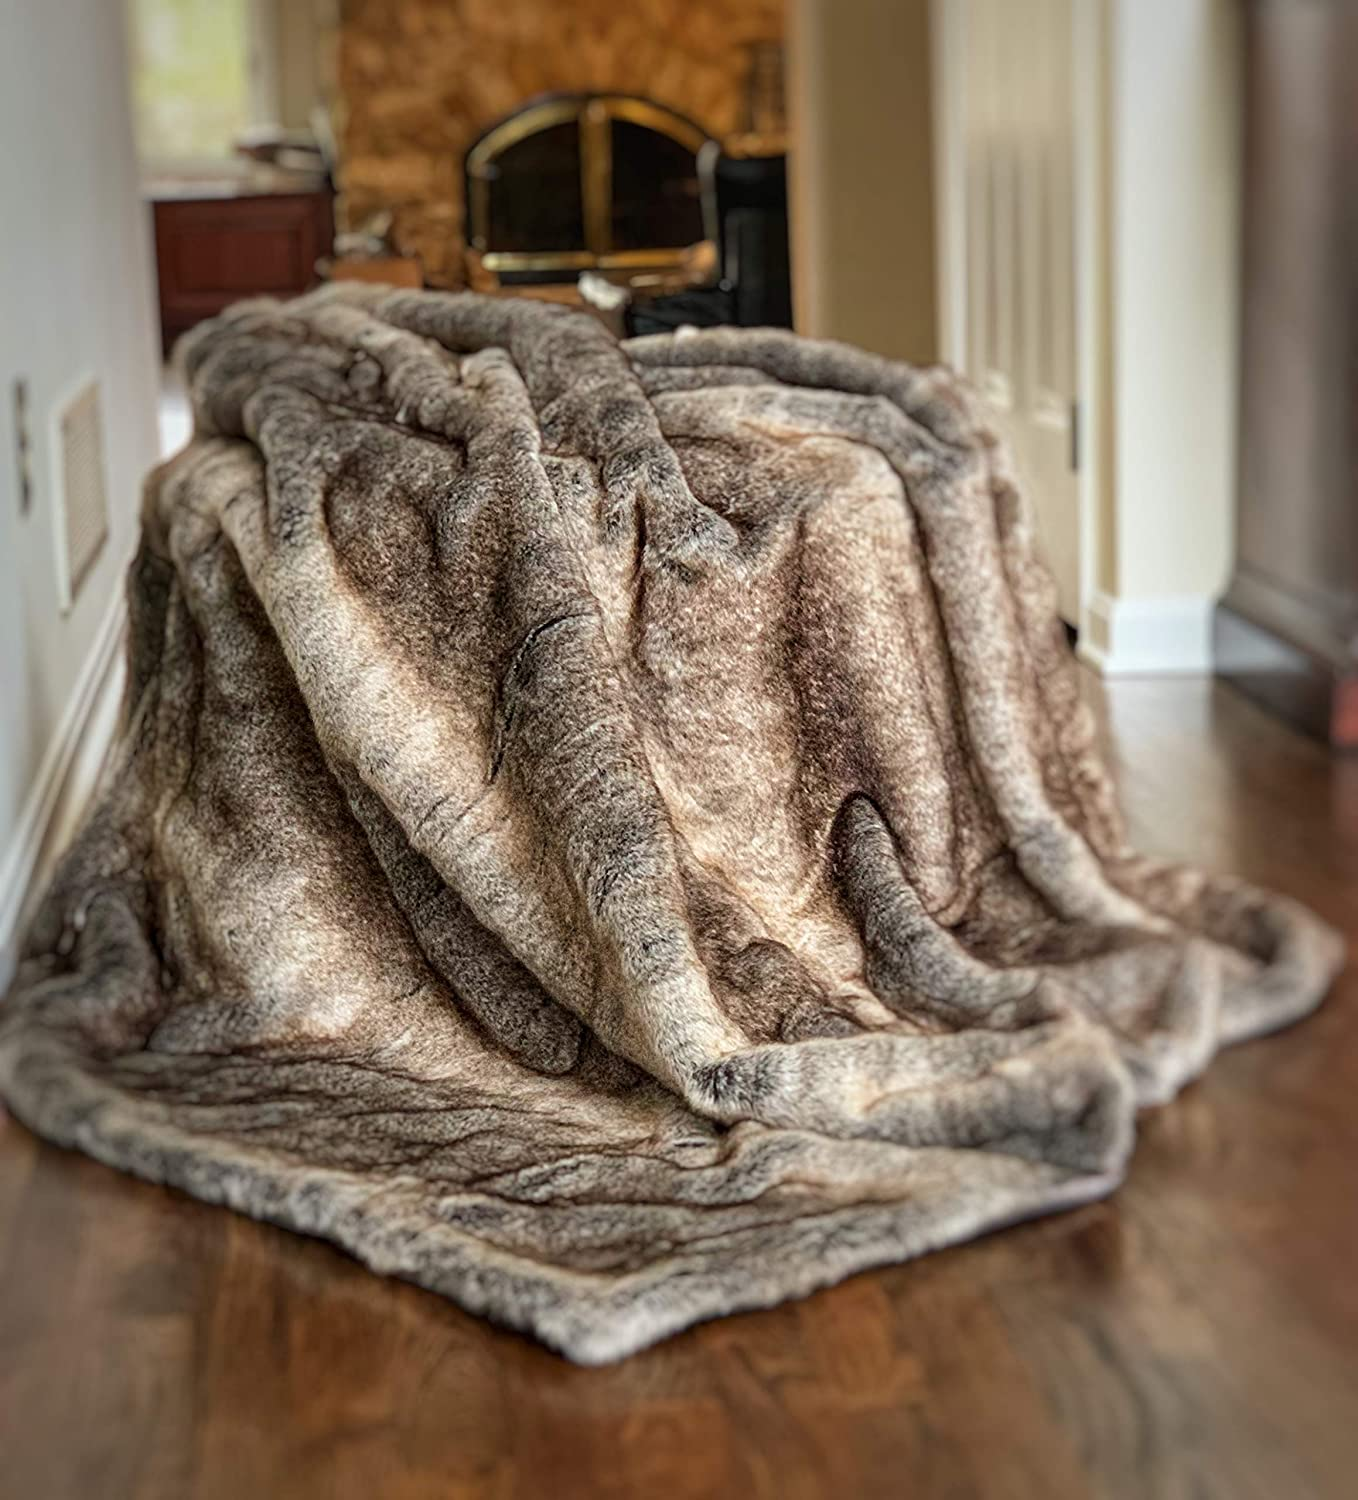 Amazon Com Tahari Mink Faux Fur Throw Home Luxury Plush Silver Tipped Gray Blanket Grey Home Kitchen